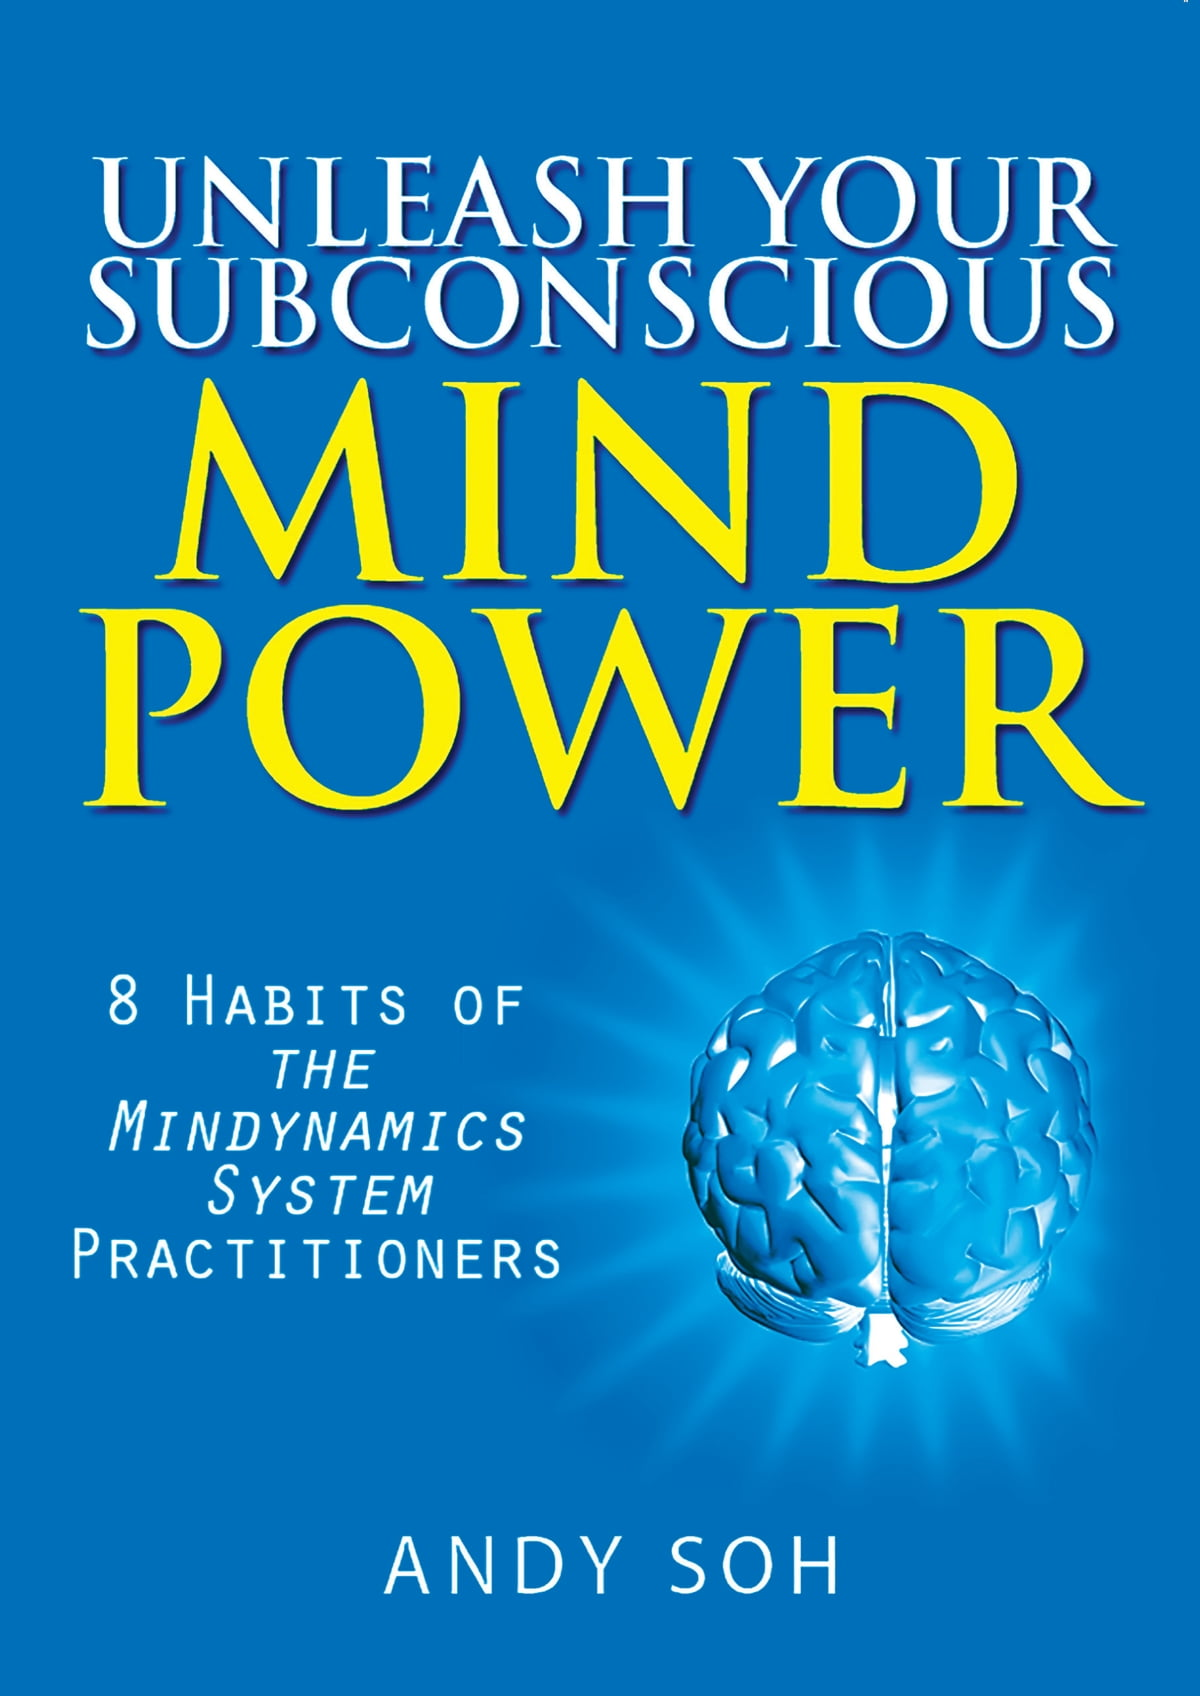 the power of your subconscious mind free ebook pdf